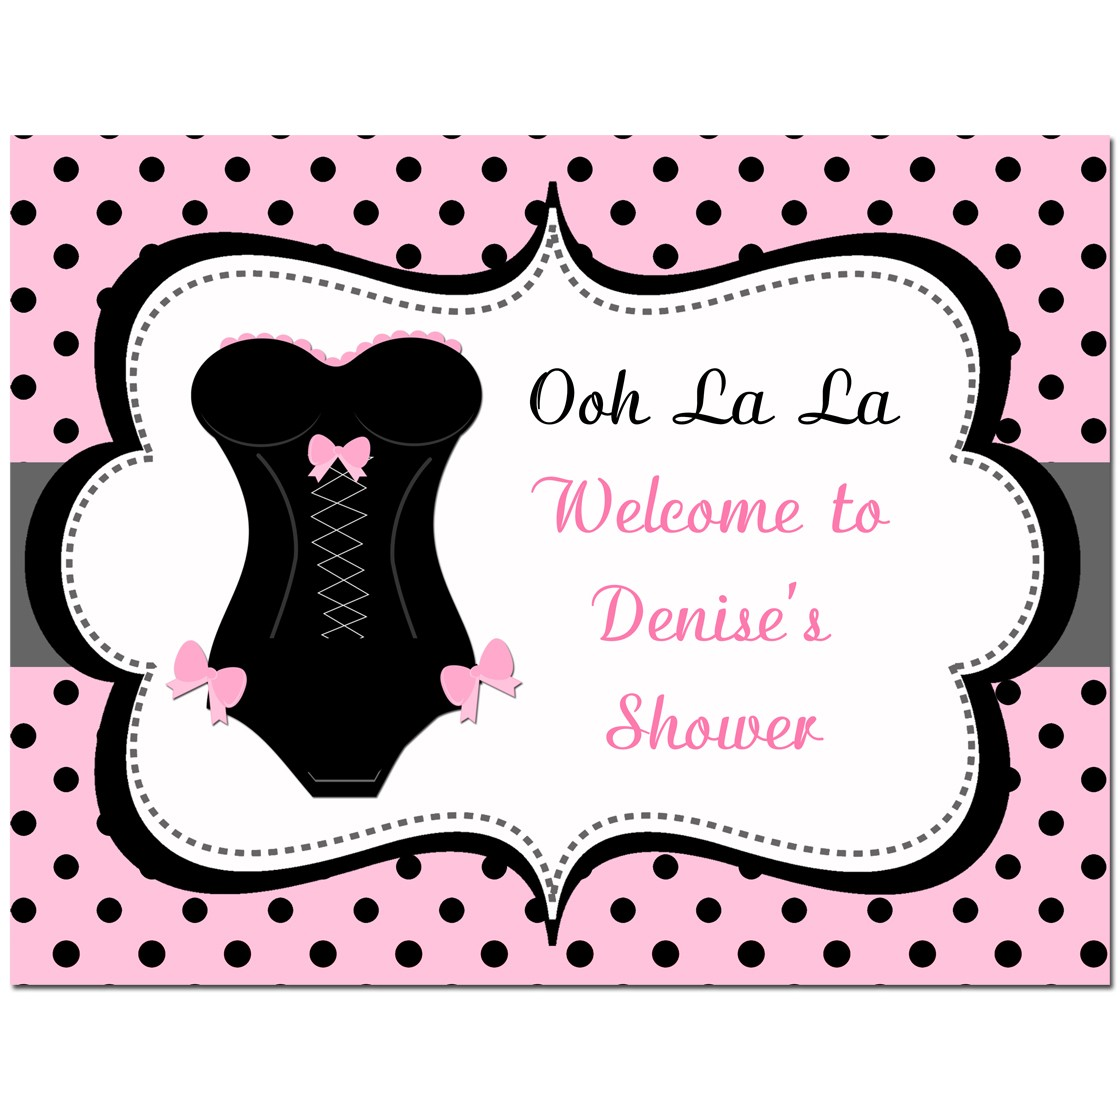 corset lingerie bridal shower door sign